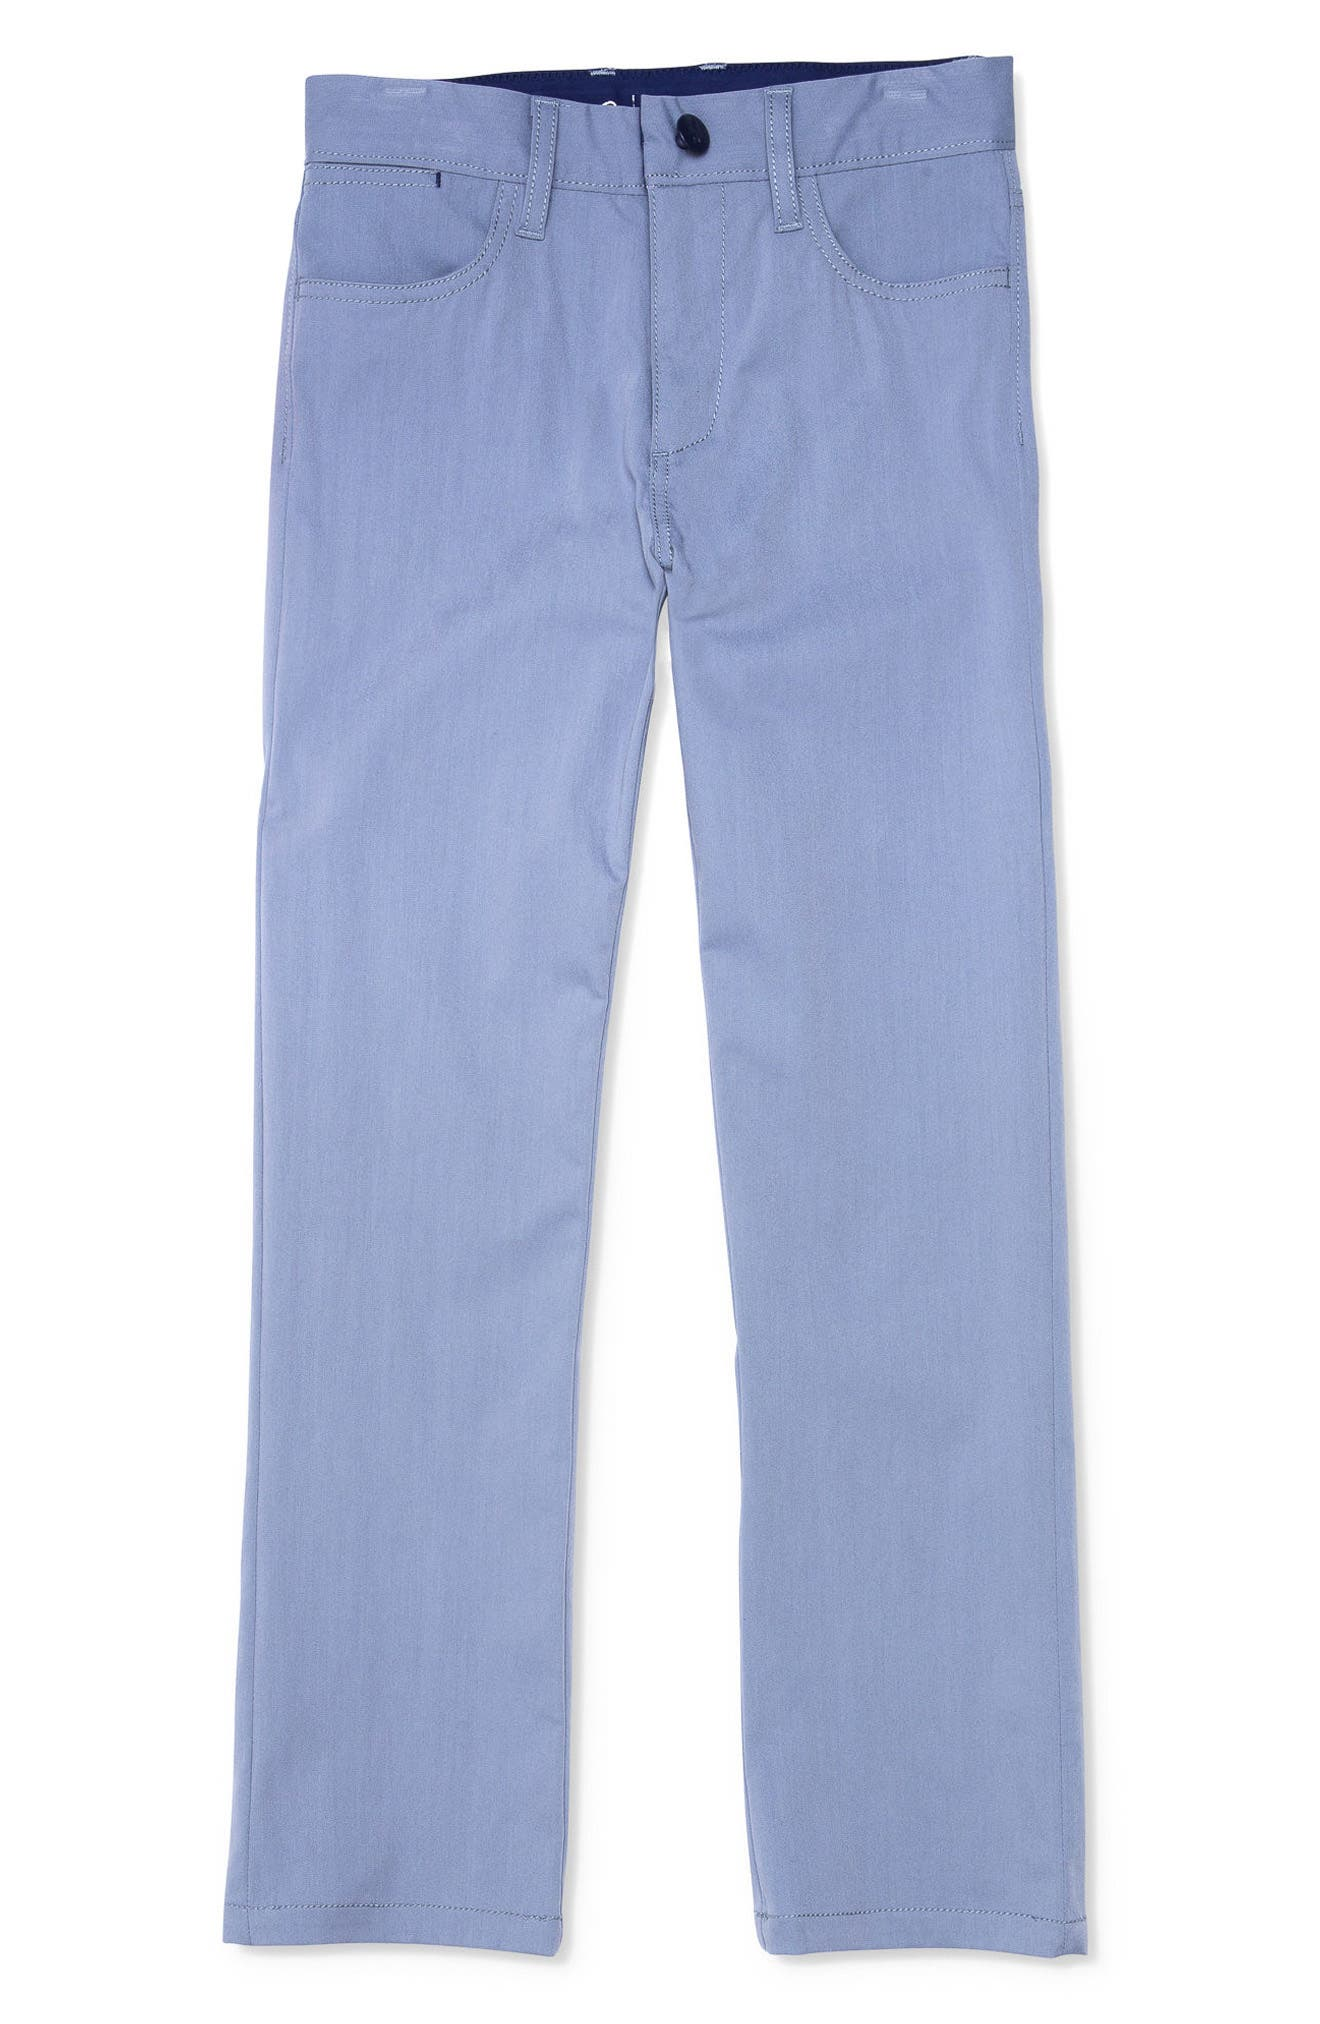 Marin Pants,                             Main thumbnail 1, color,                             032